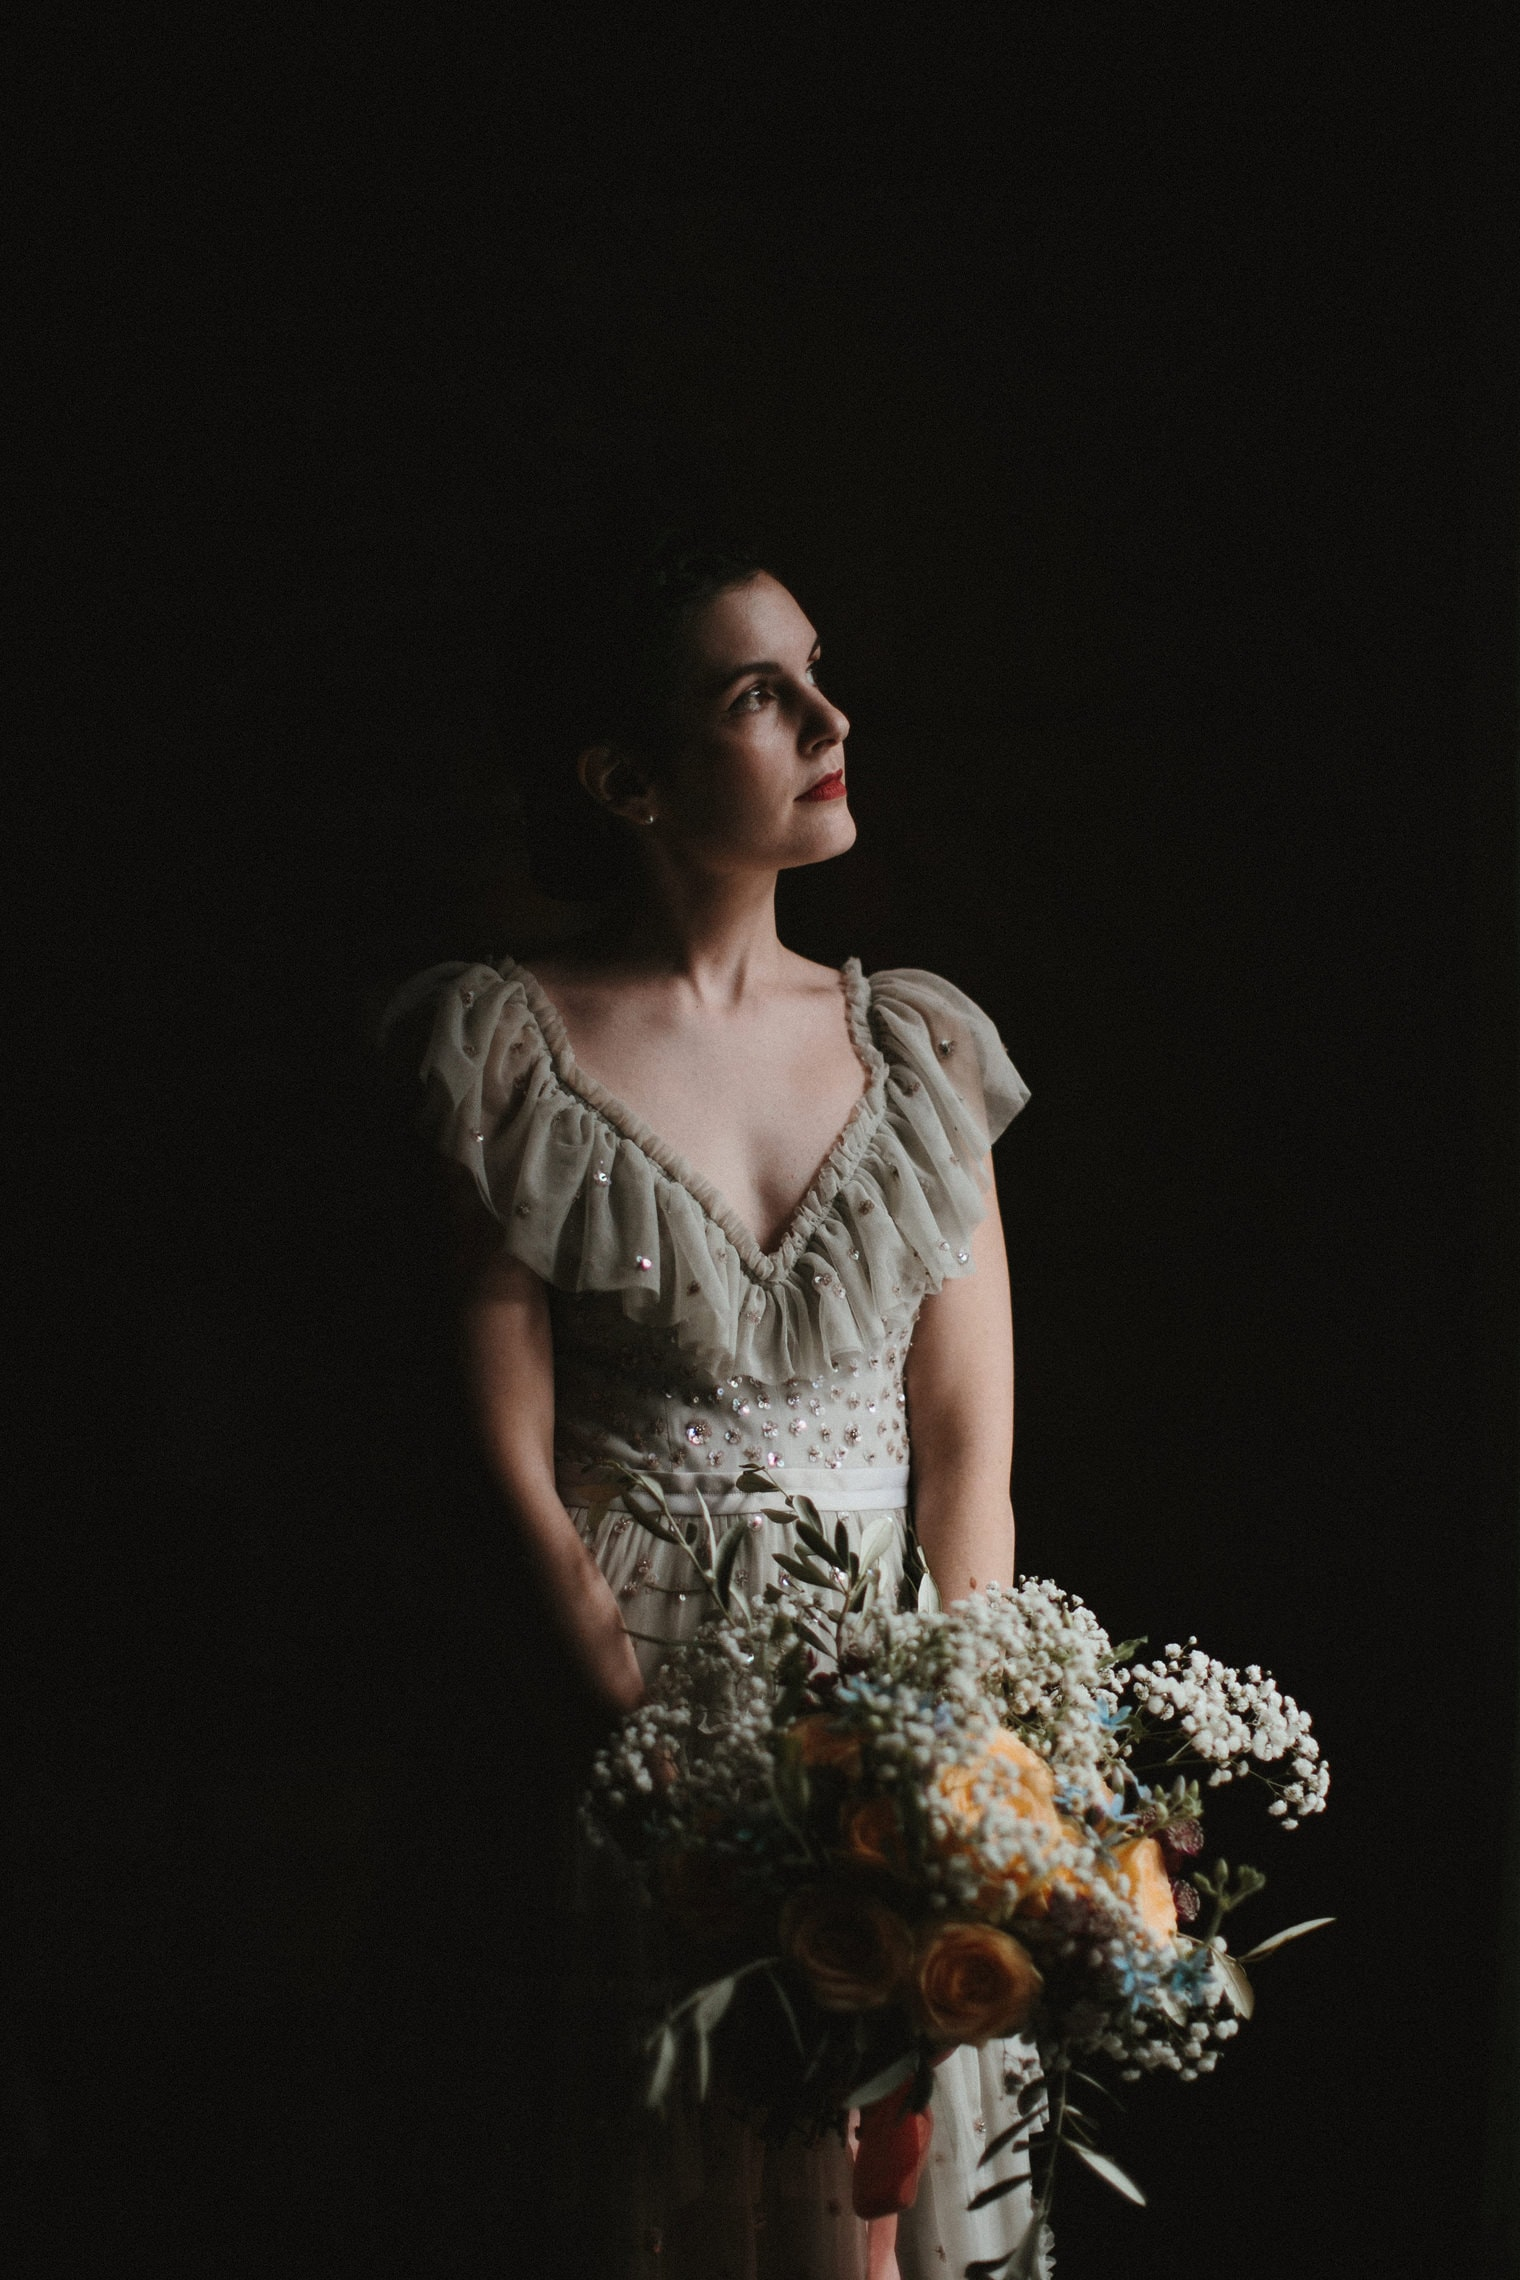 Beautiful bride with floral bouquet looking out the window wearing grey and sparkly needle and thread wedding dress